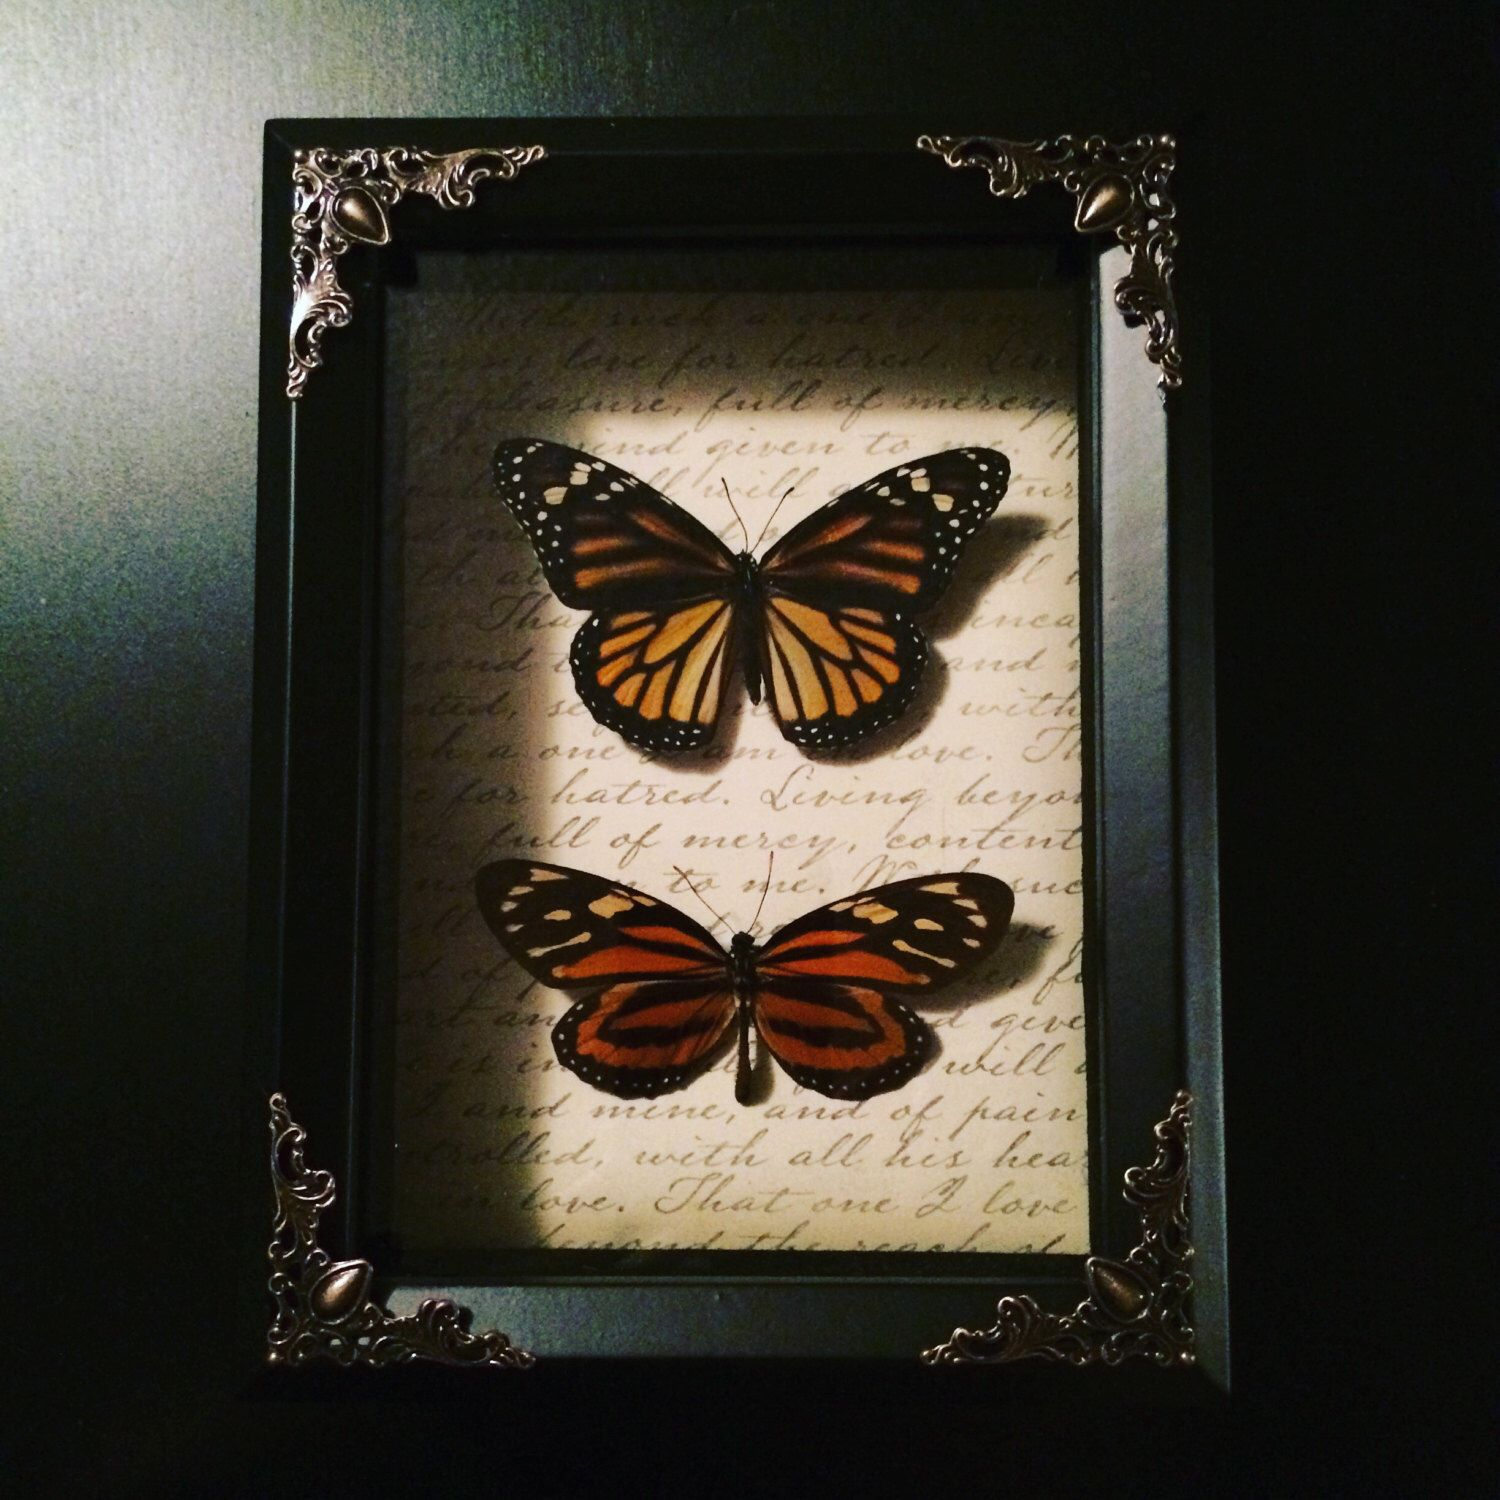 Mounted Monarch & Tropical Milkweed Butterfly Shadow Box